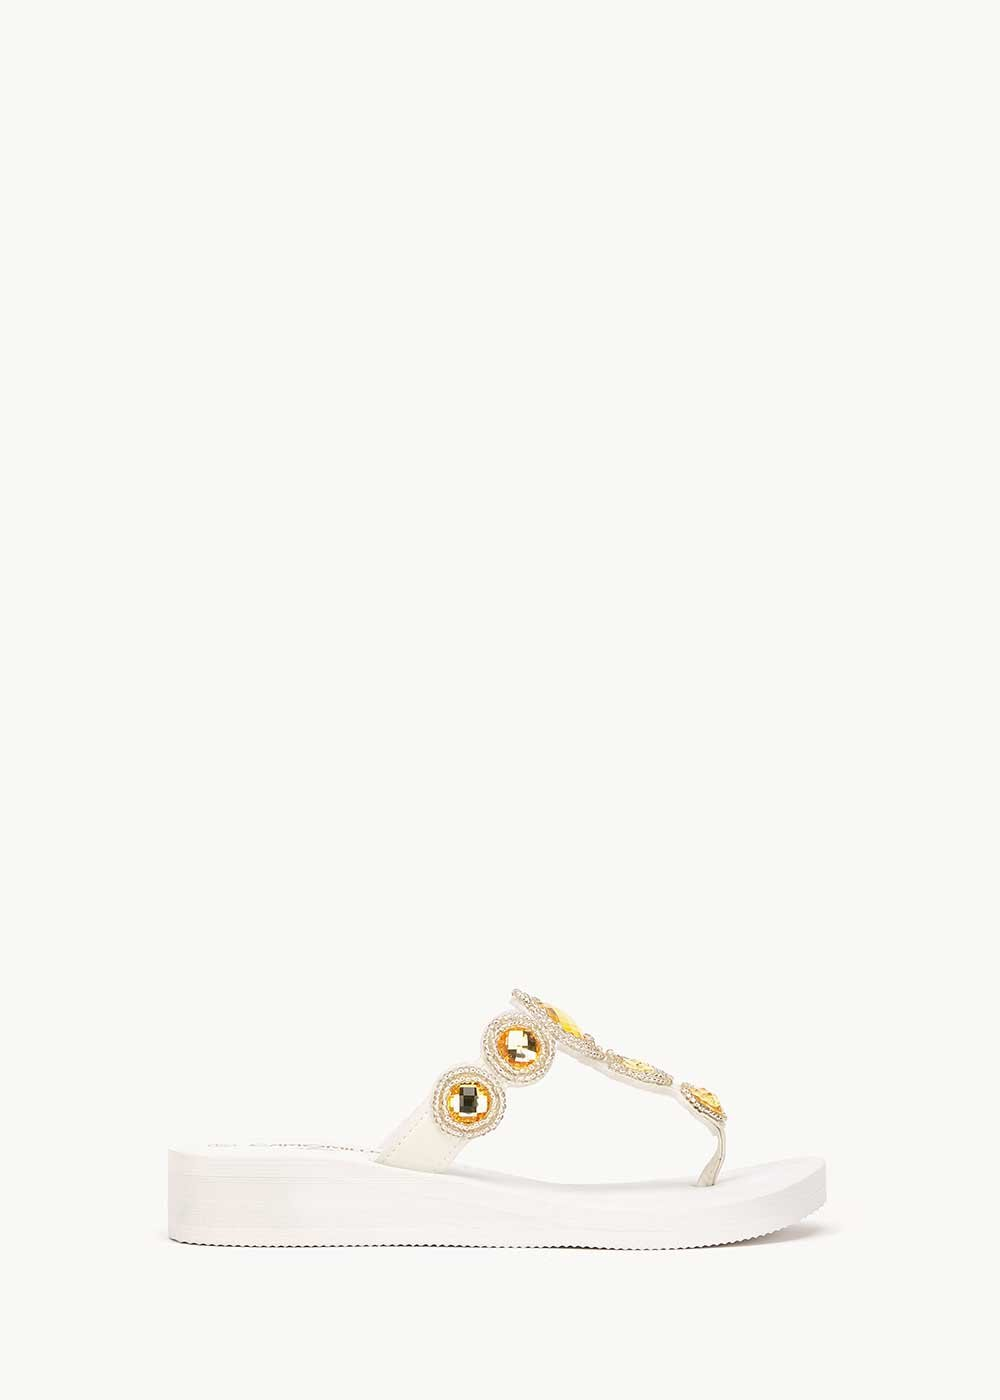 Picy beach flip flops with gem detail - coconut - Woman